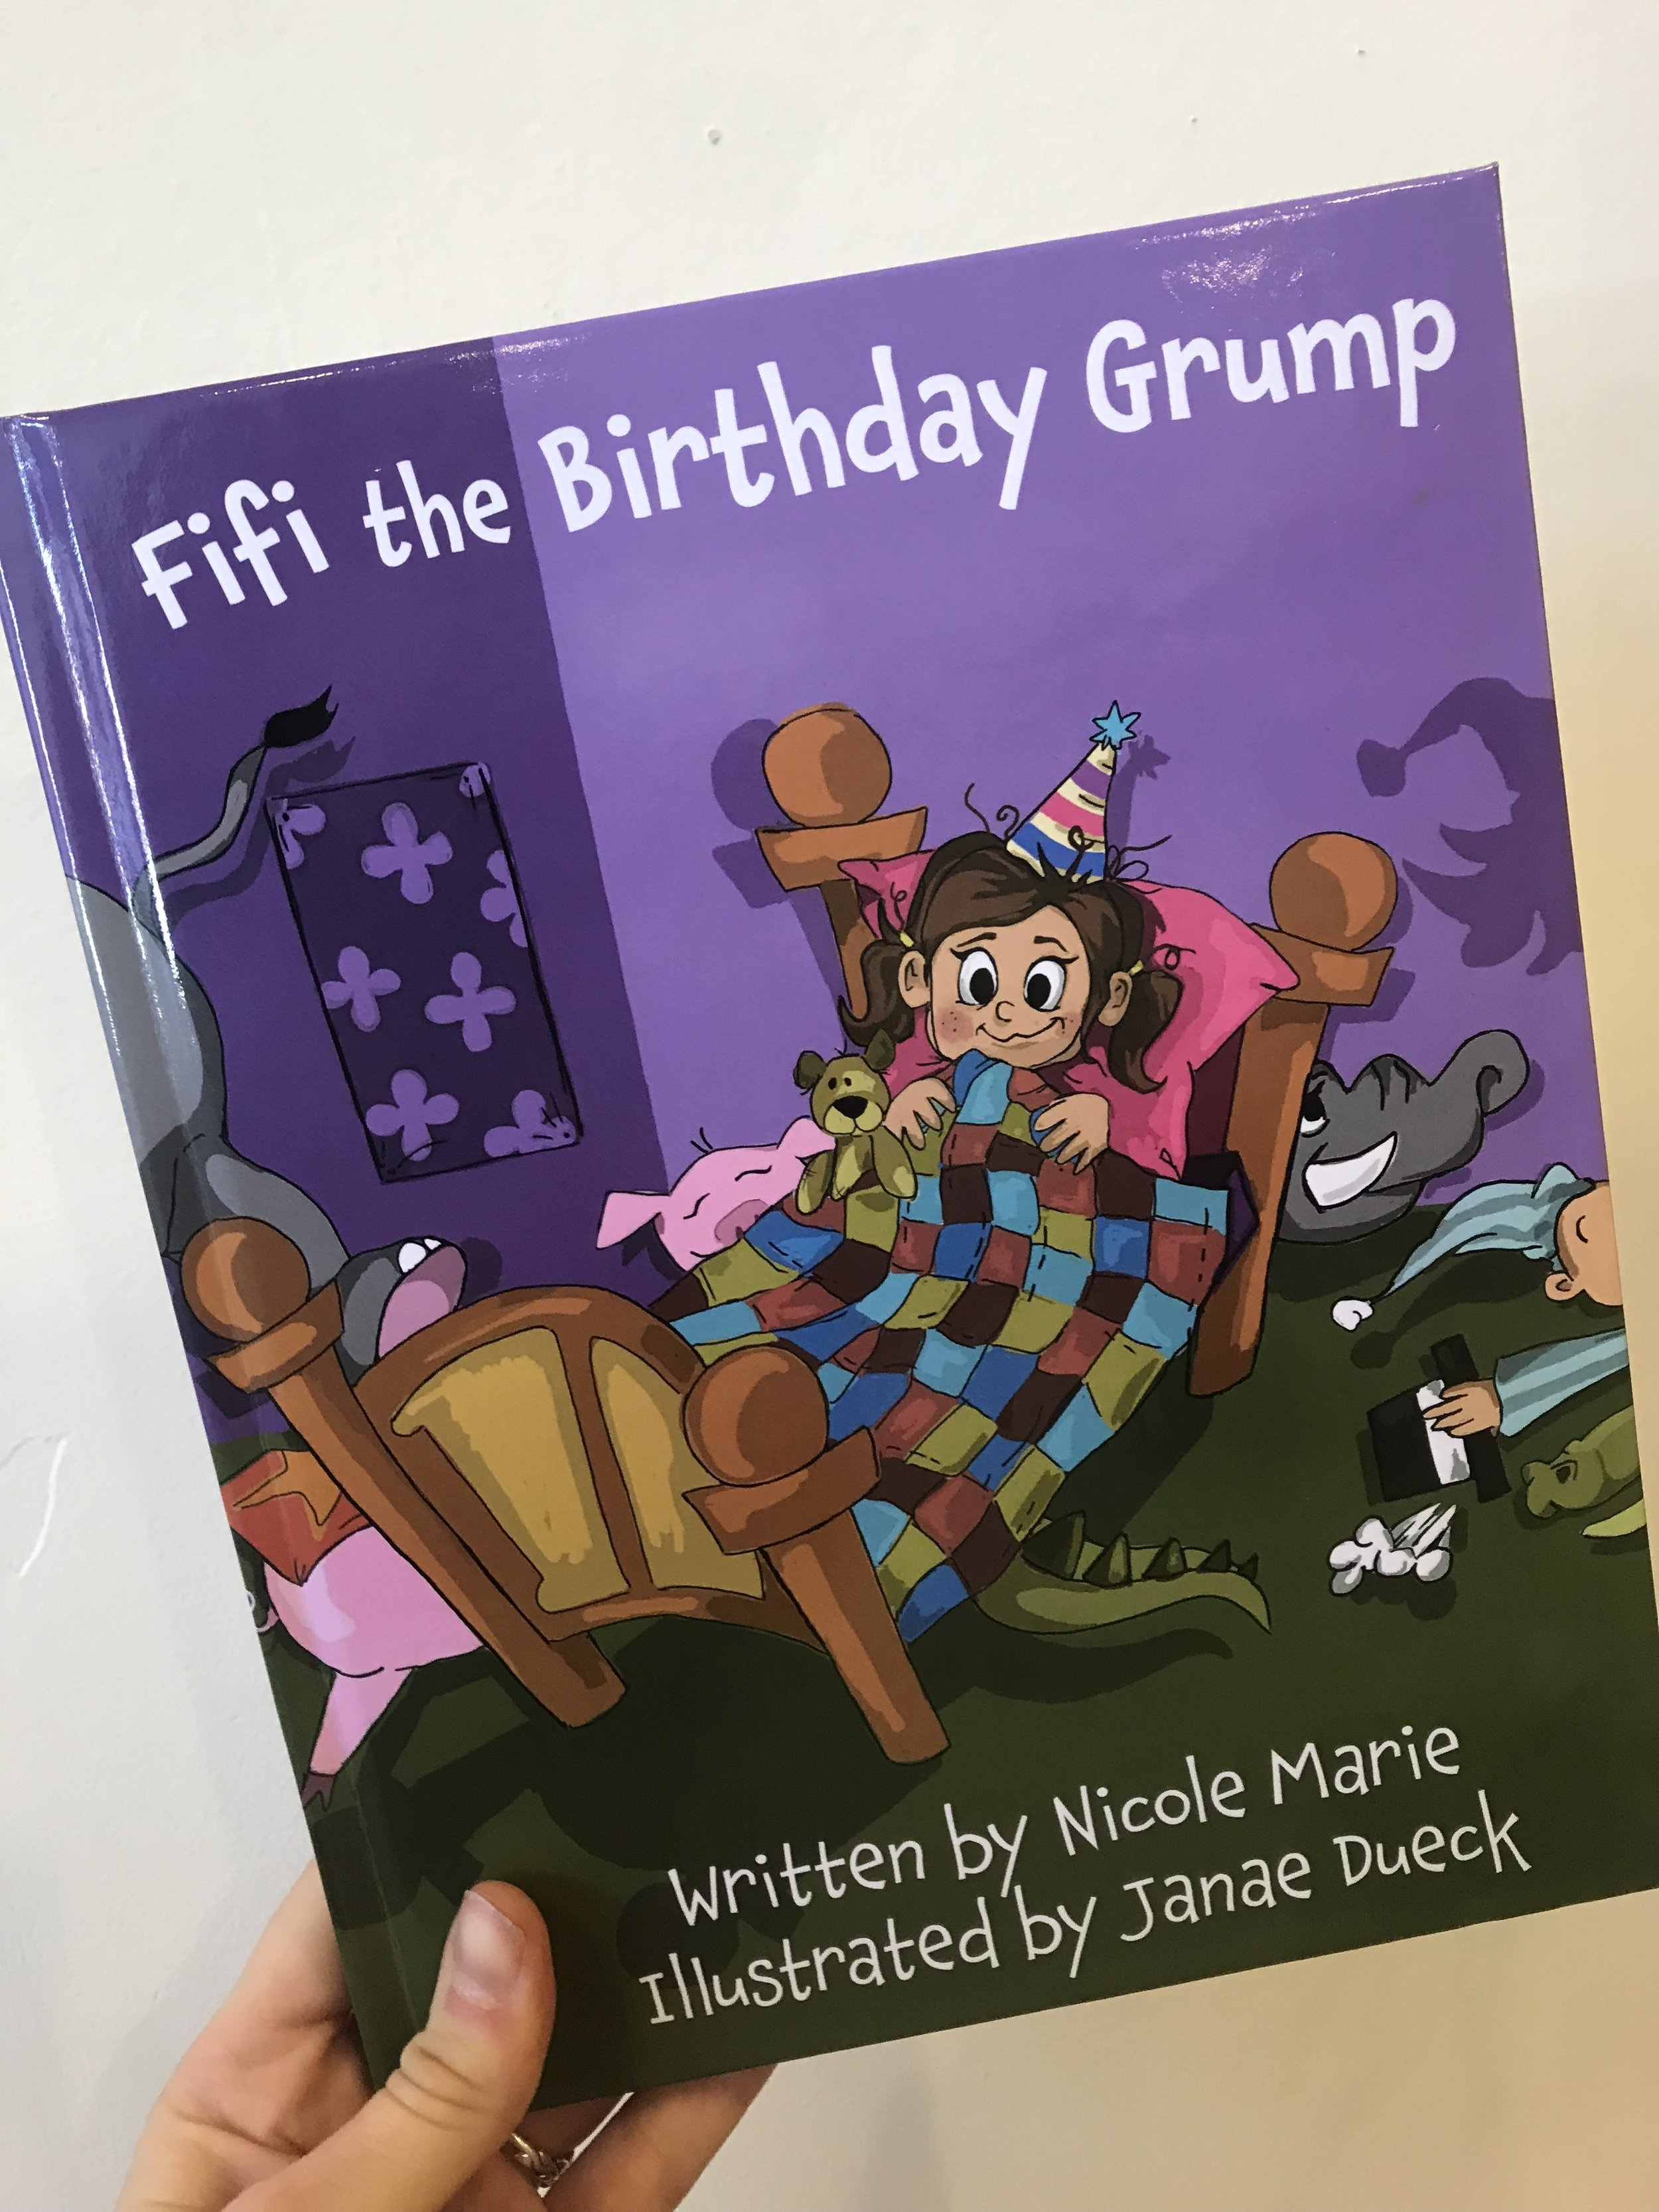 Author, Nicole Marie - Special thanks to Janae for lighting a fire under my feet. Your enthusiasm is contagious.Fifi the Birthday Grump Written by Nicole Marie and Illustrated by Janae Dueck (Published in 2018)